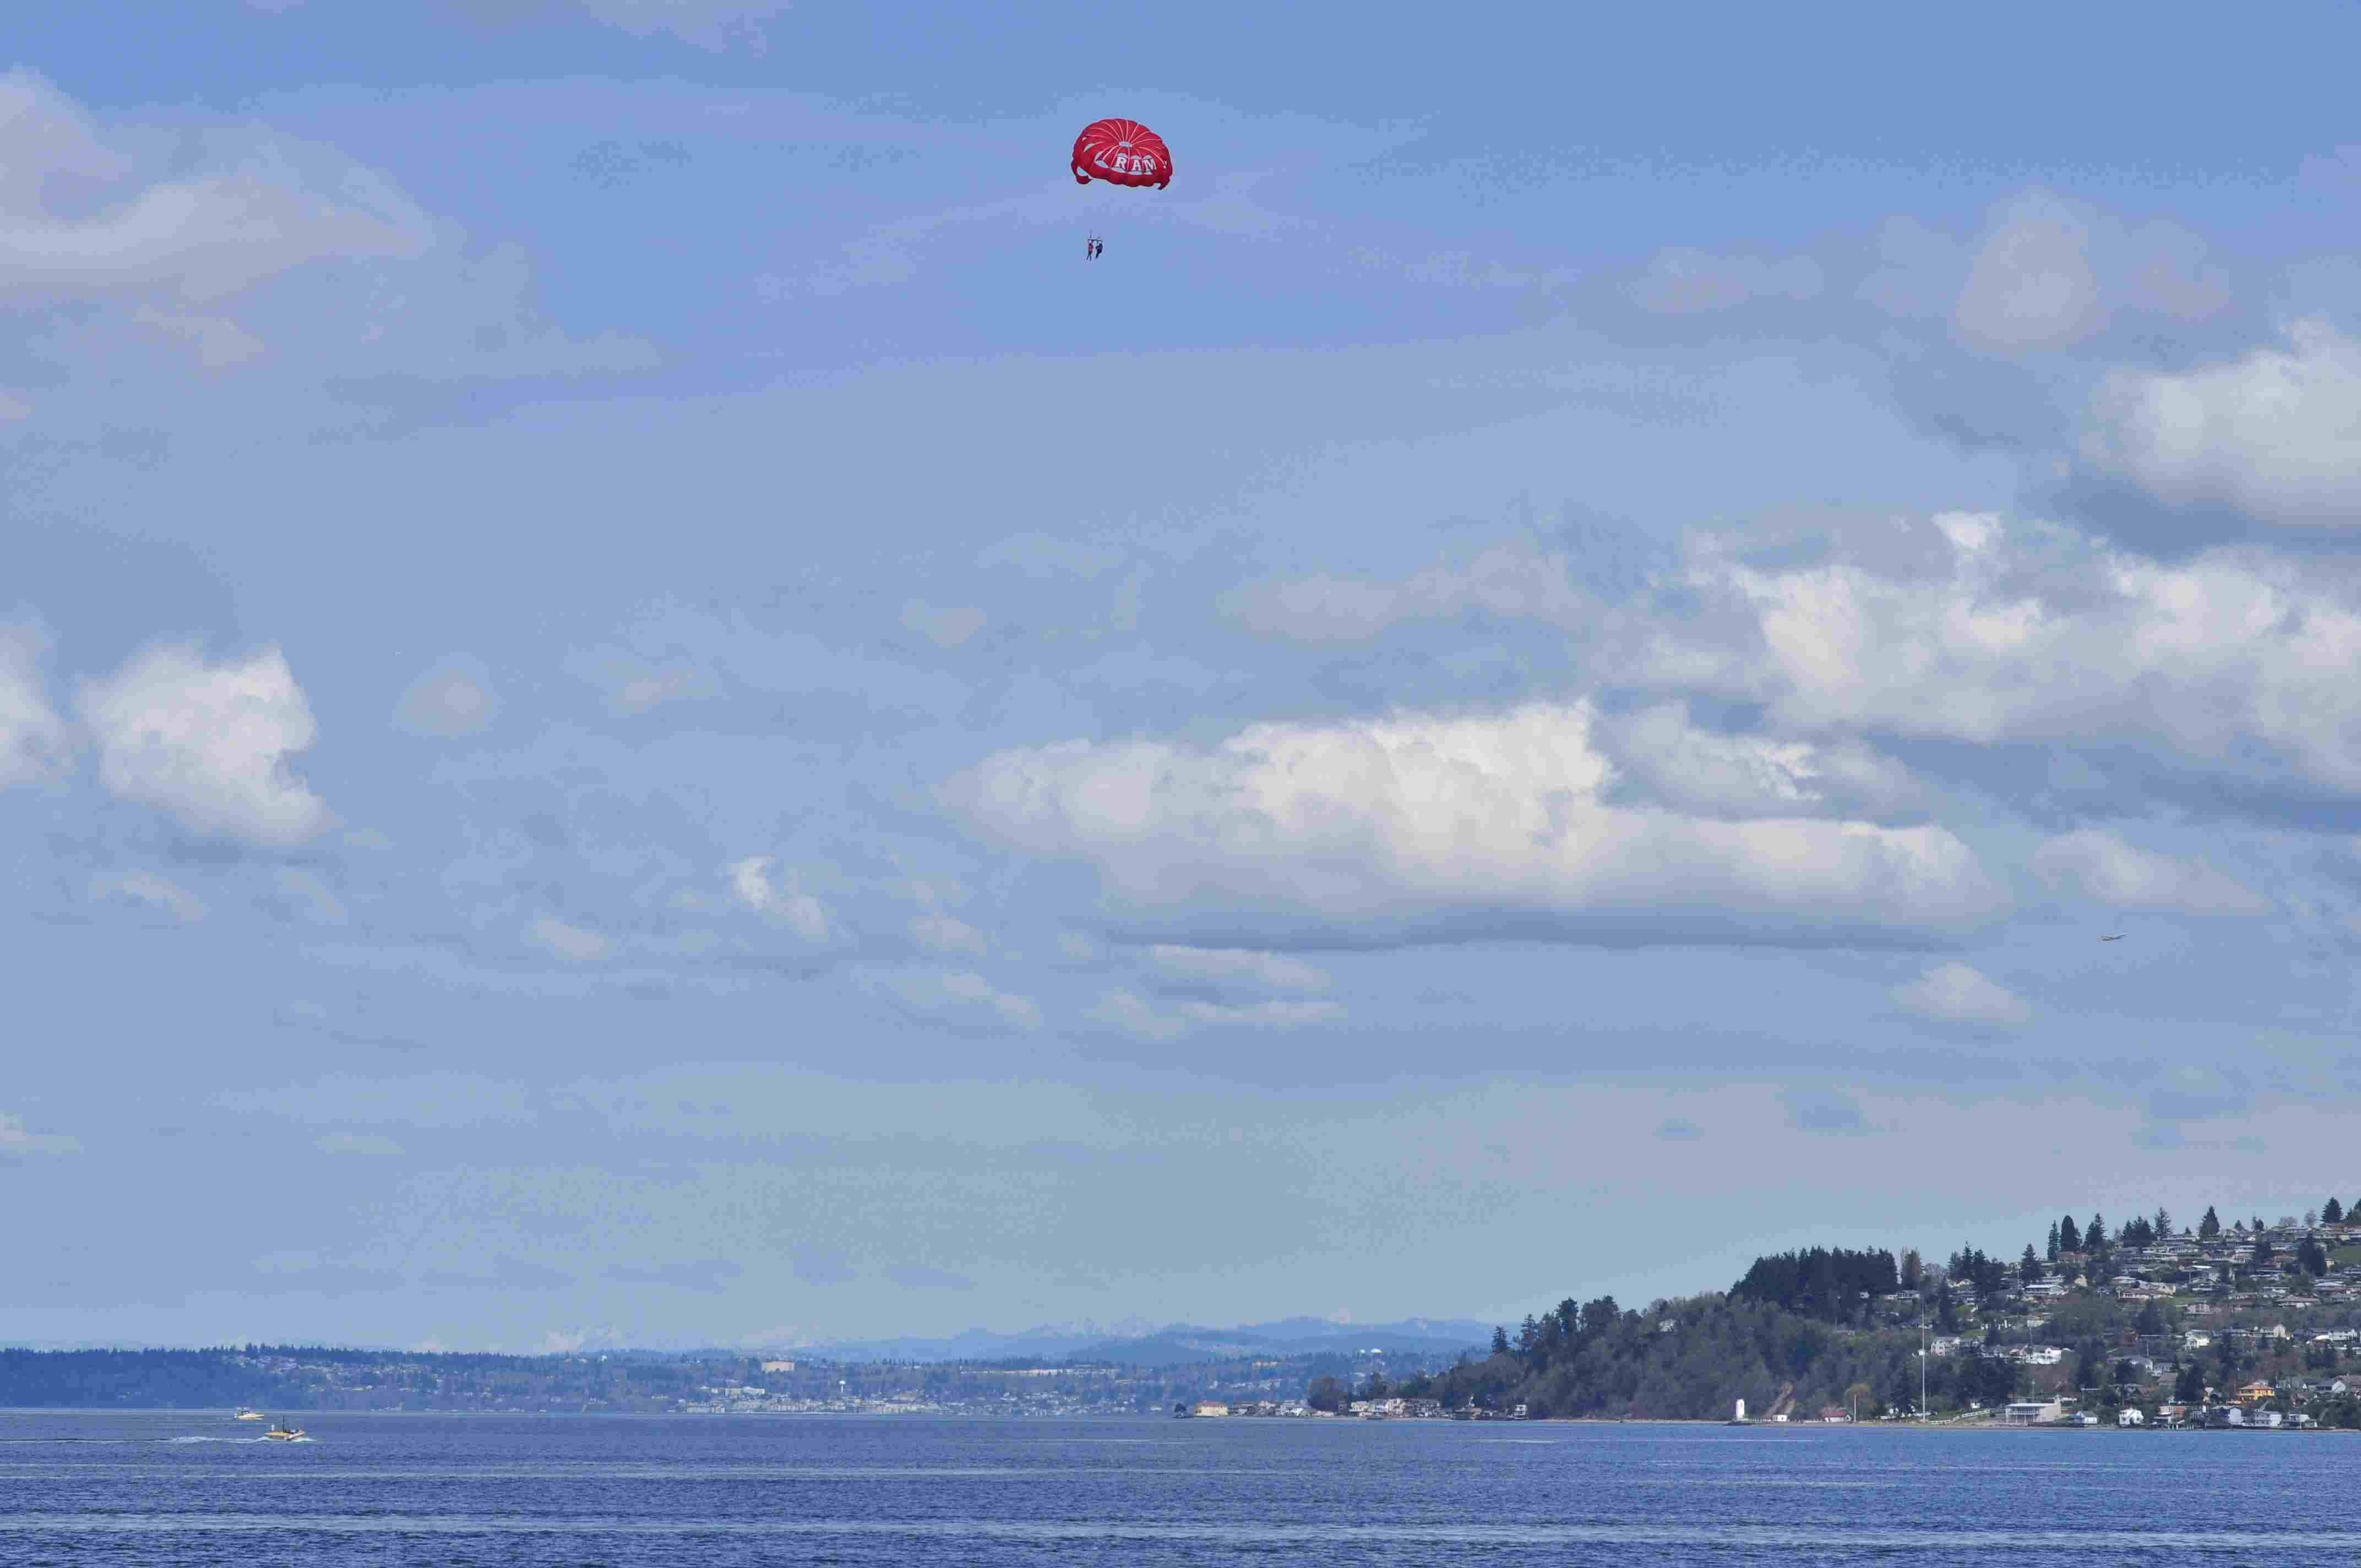 Parasailing over Commencement Bay